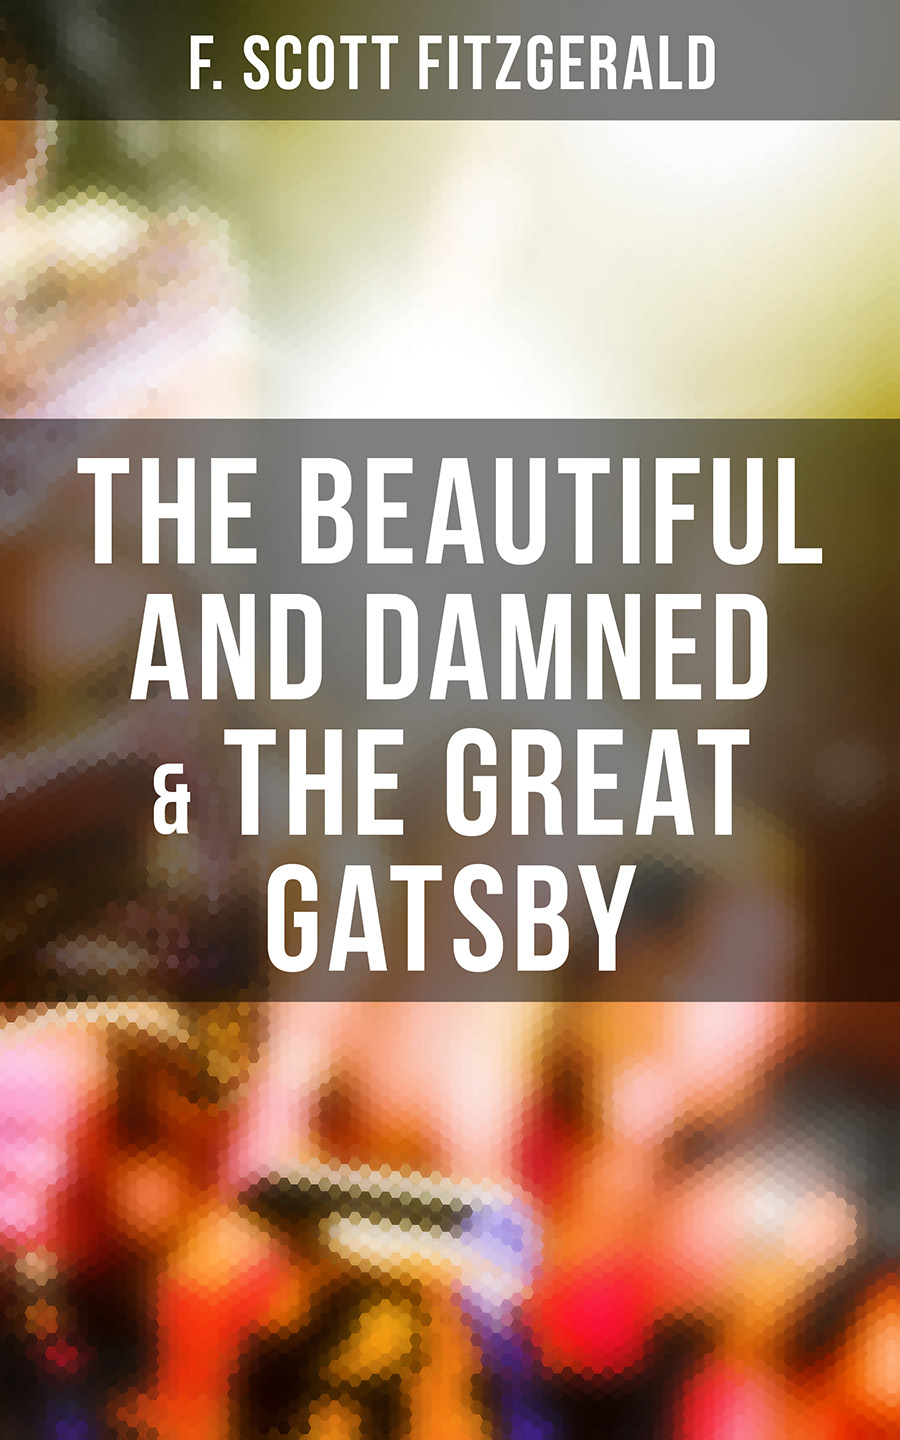 F. Scott Fitzgerald The Beautiful and Damned & The Great Gatsby f scott fitzgerald the last tycoon isbn 978 5 521 07031 2